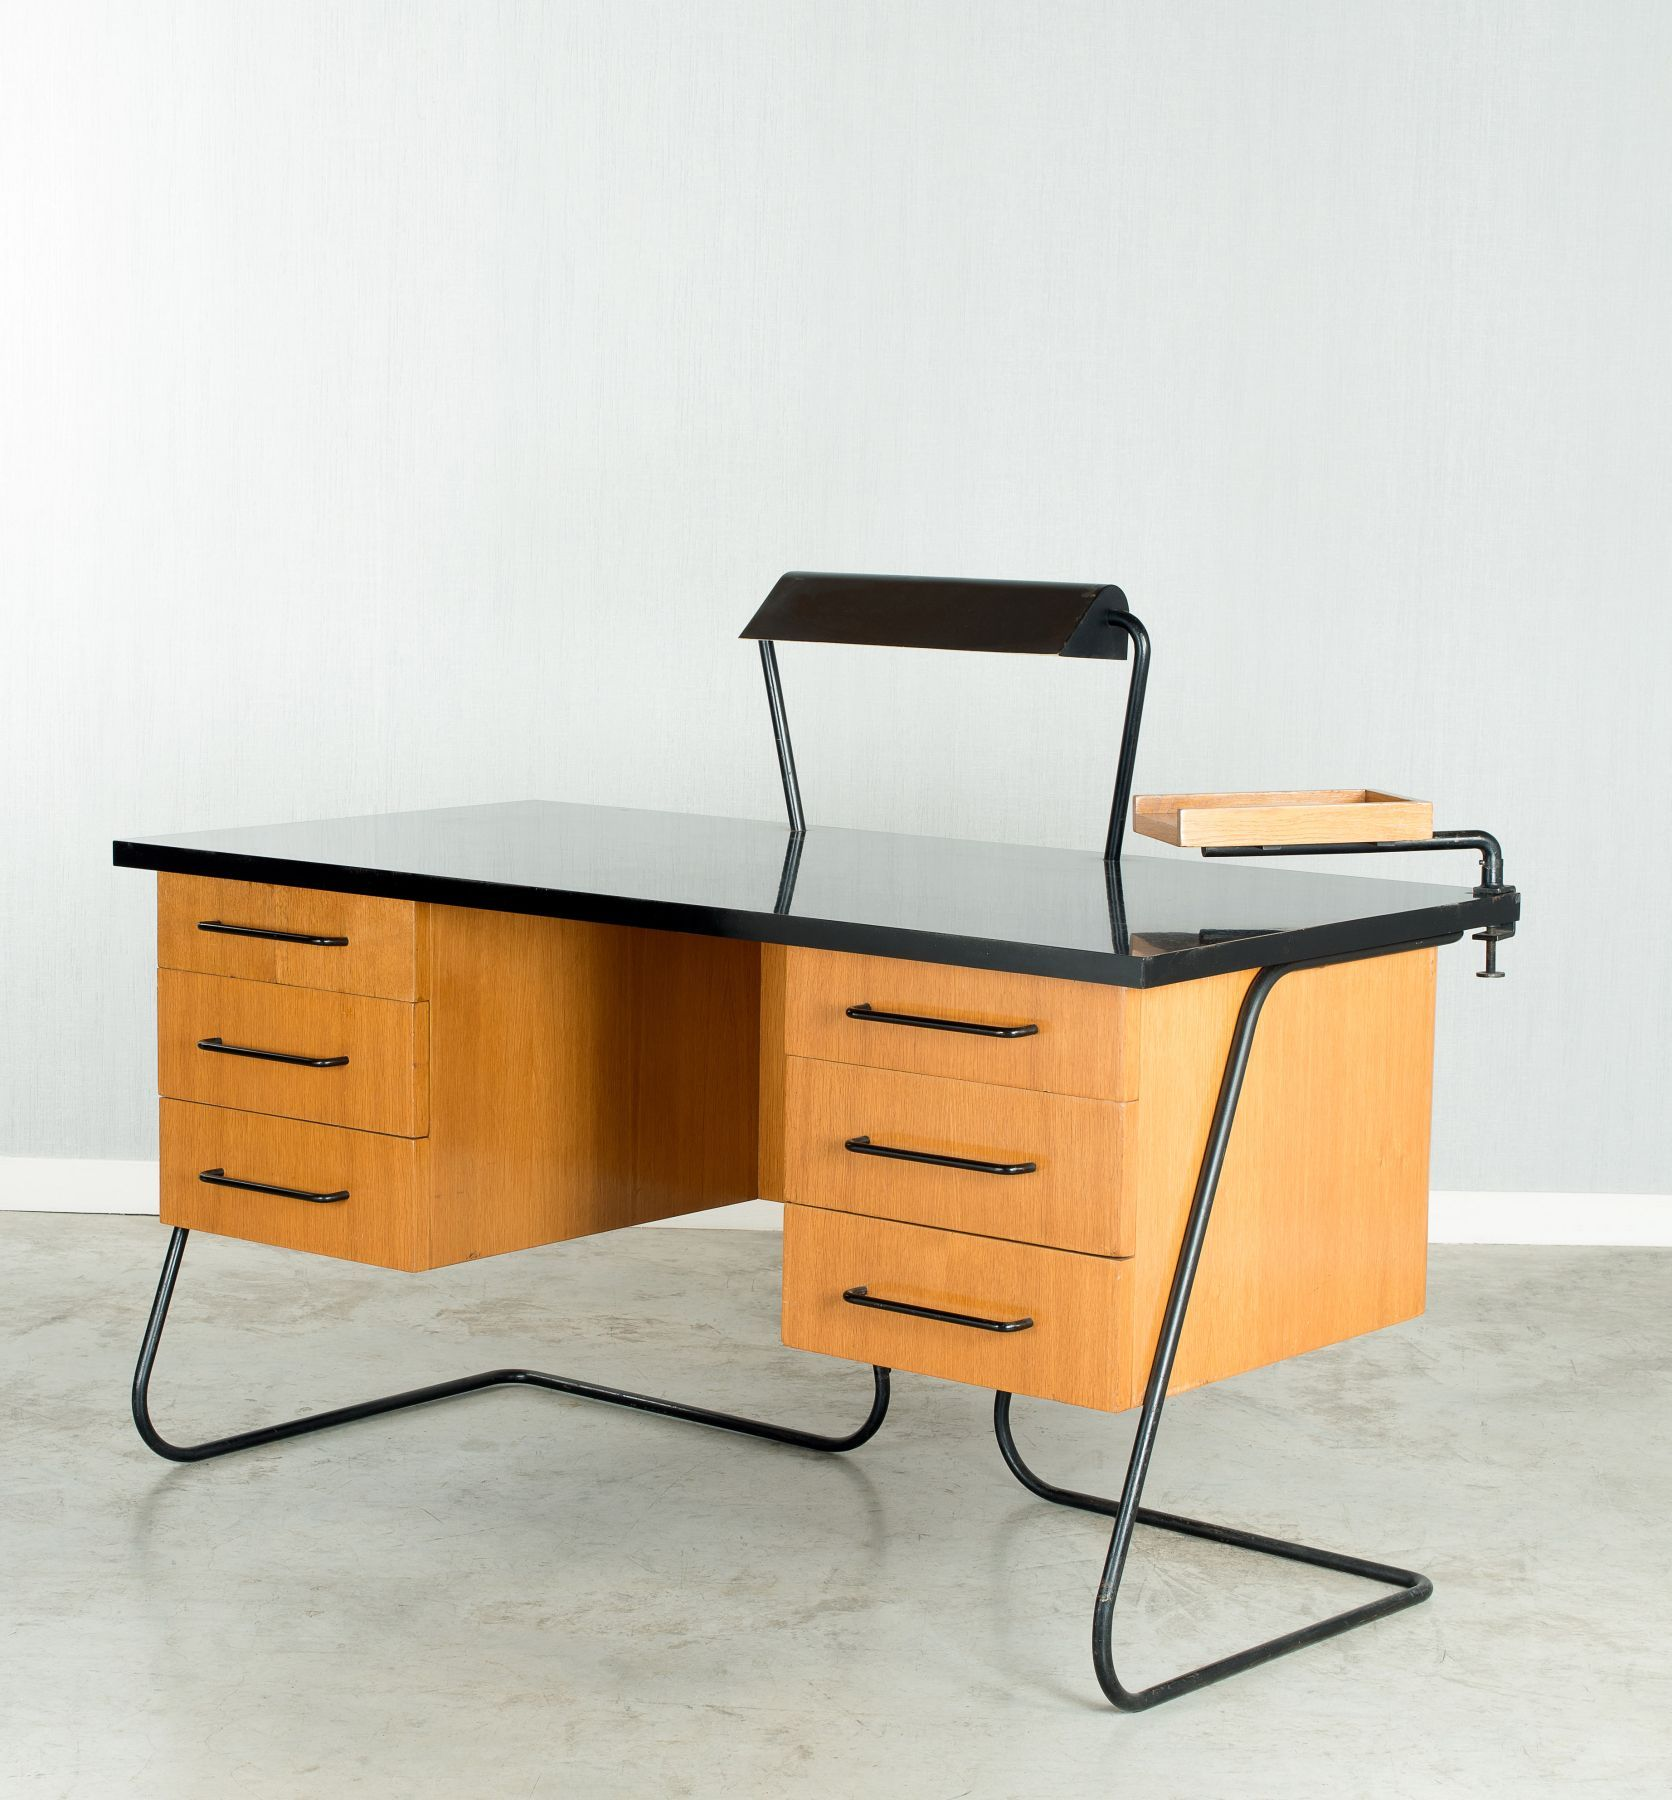 Jean Roy Re Oak And Laminated Metal Desk, 1950